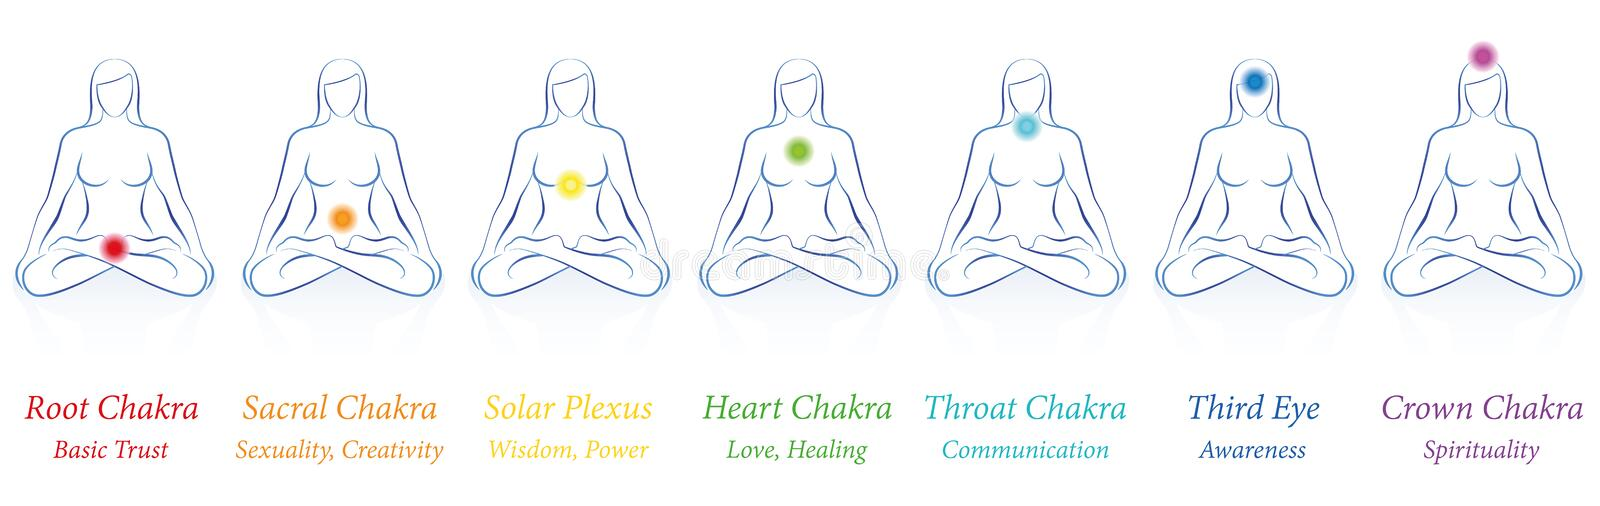 Significations de couleurs de la femme sept de Chakras illustration stock